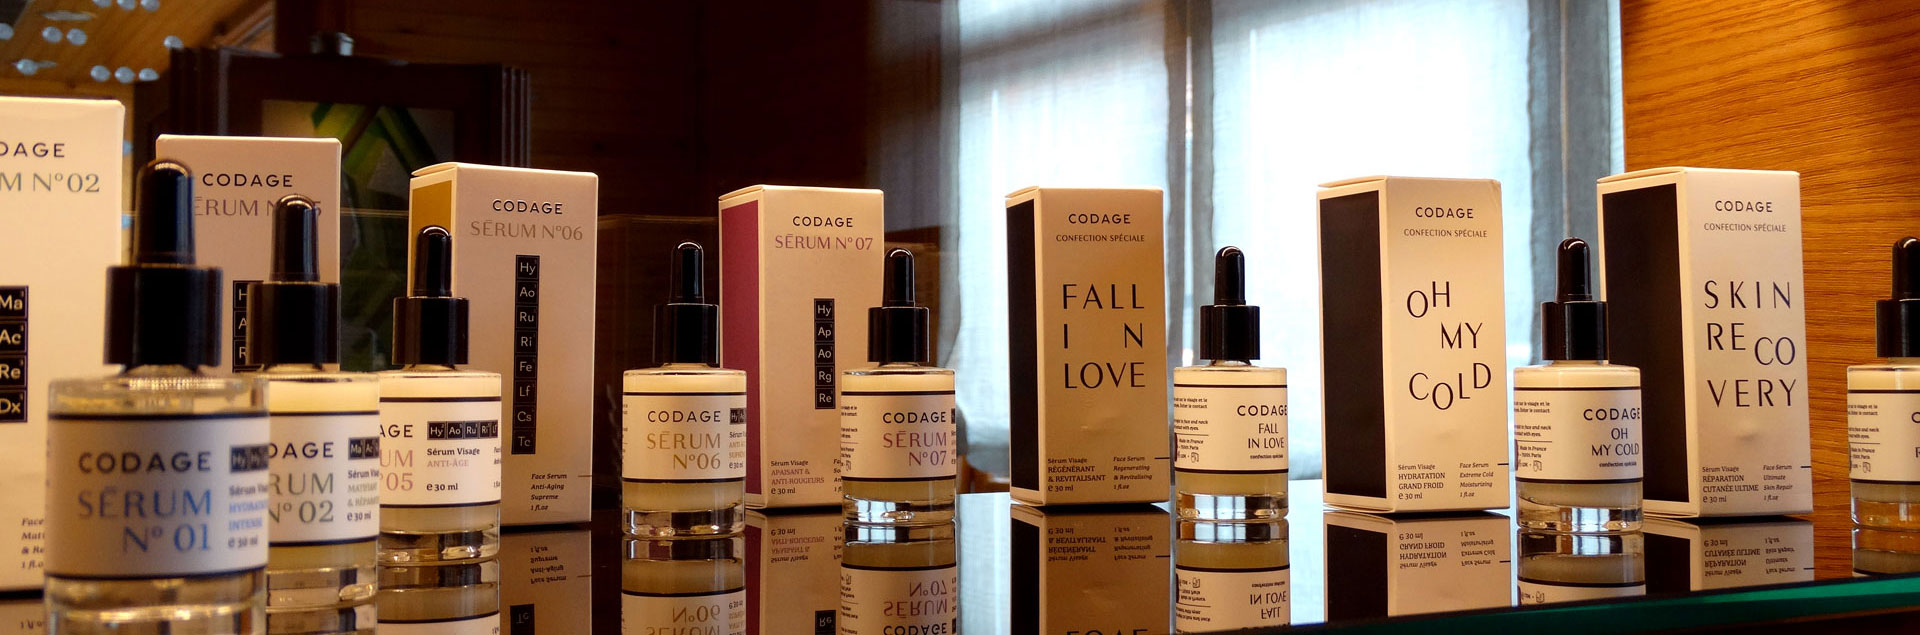 Beauty promotion treatments: Valmont, Payot, Codage